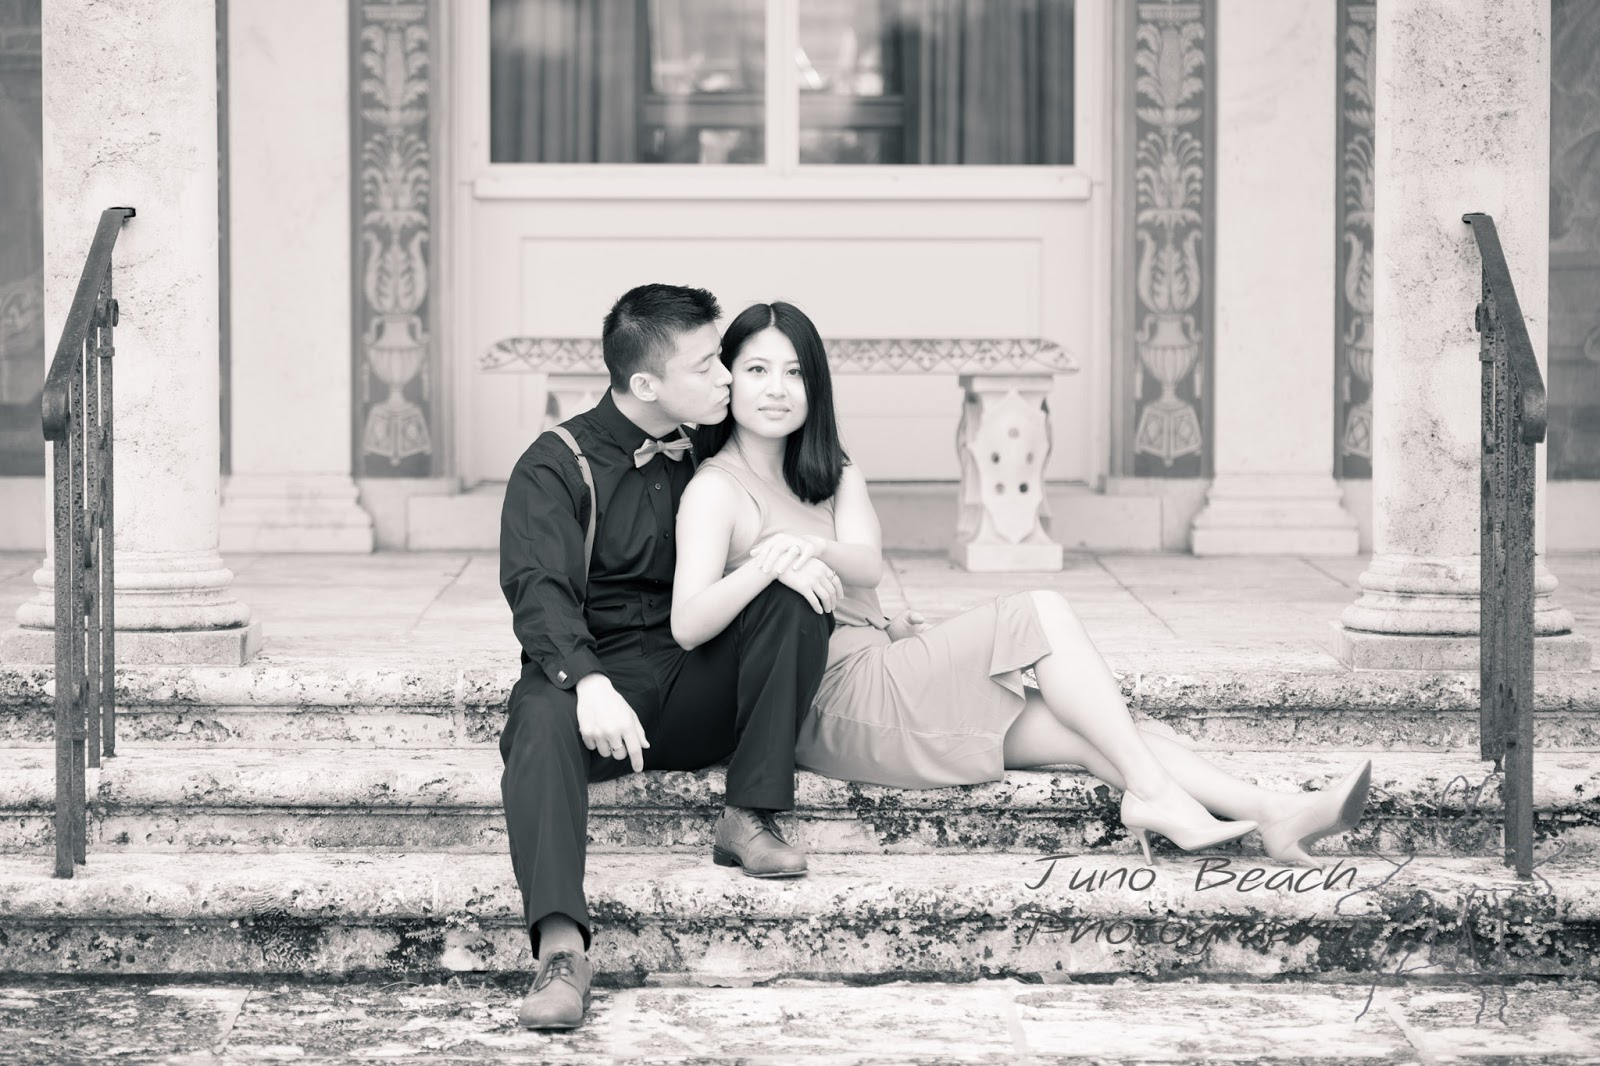 Engagement Session at Four Arts Society on Palm Beach by Juno Beach Photography